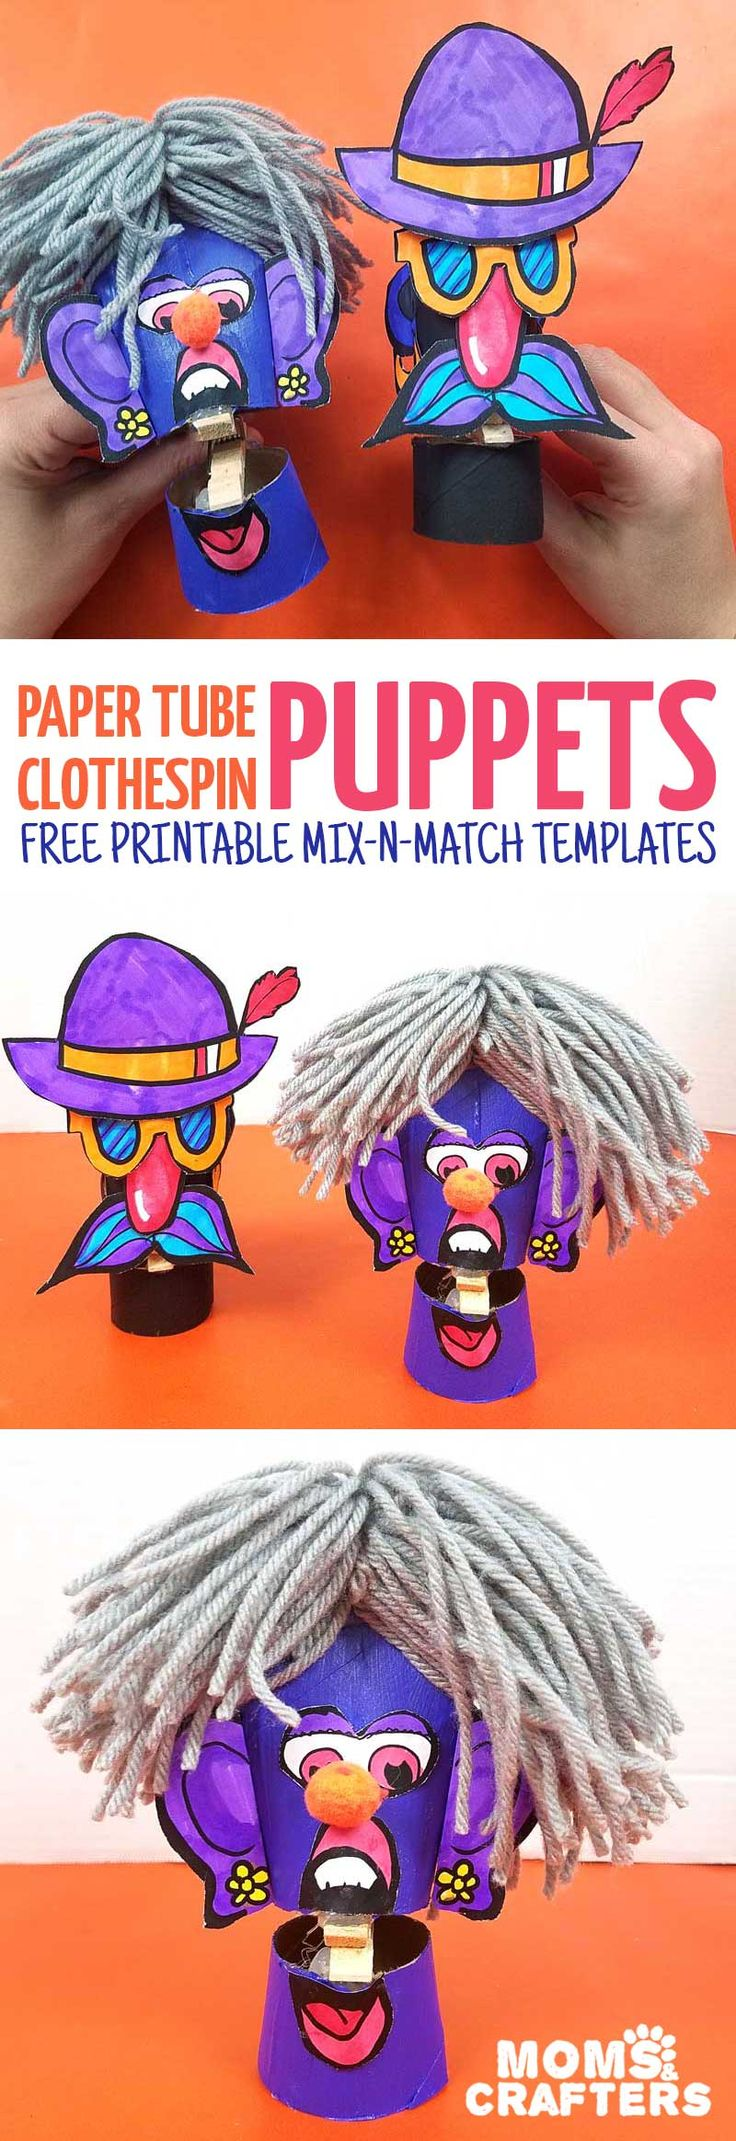 Make these adorable toilet paper roll clothespin puppets using the free paper craft template! It includes loads of mix and match facial featues and accessories and is a fun recycled paper tube arts and crafts project for kids, tweens, teens, and adults. #kidscraft #freeprintable #papercraft